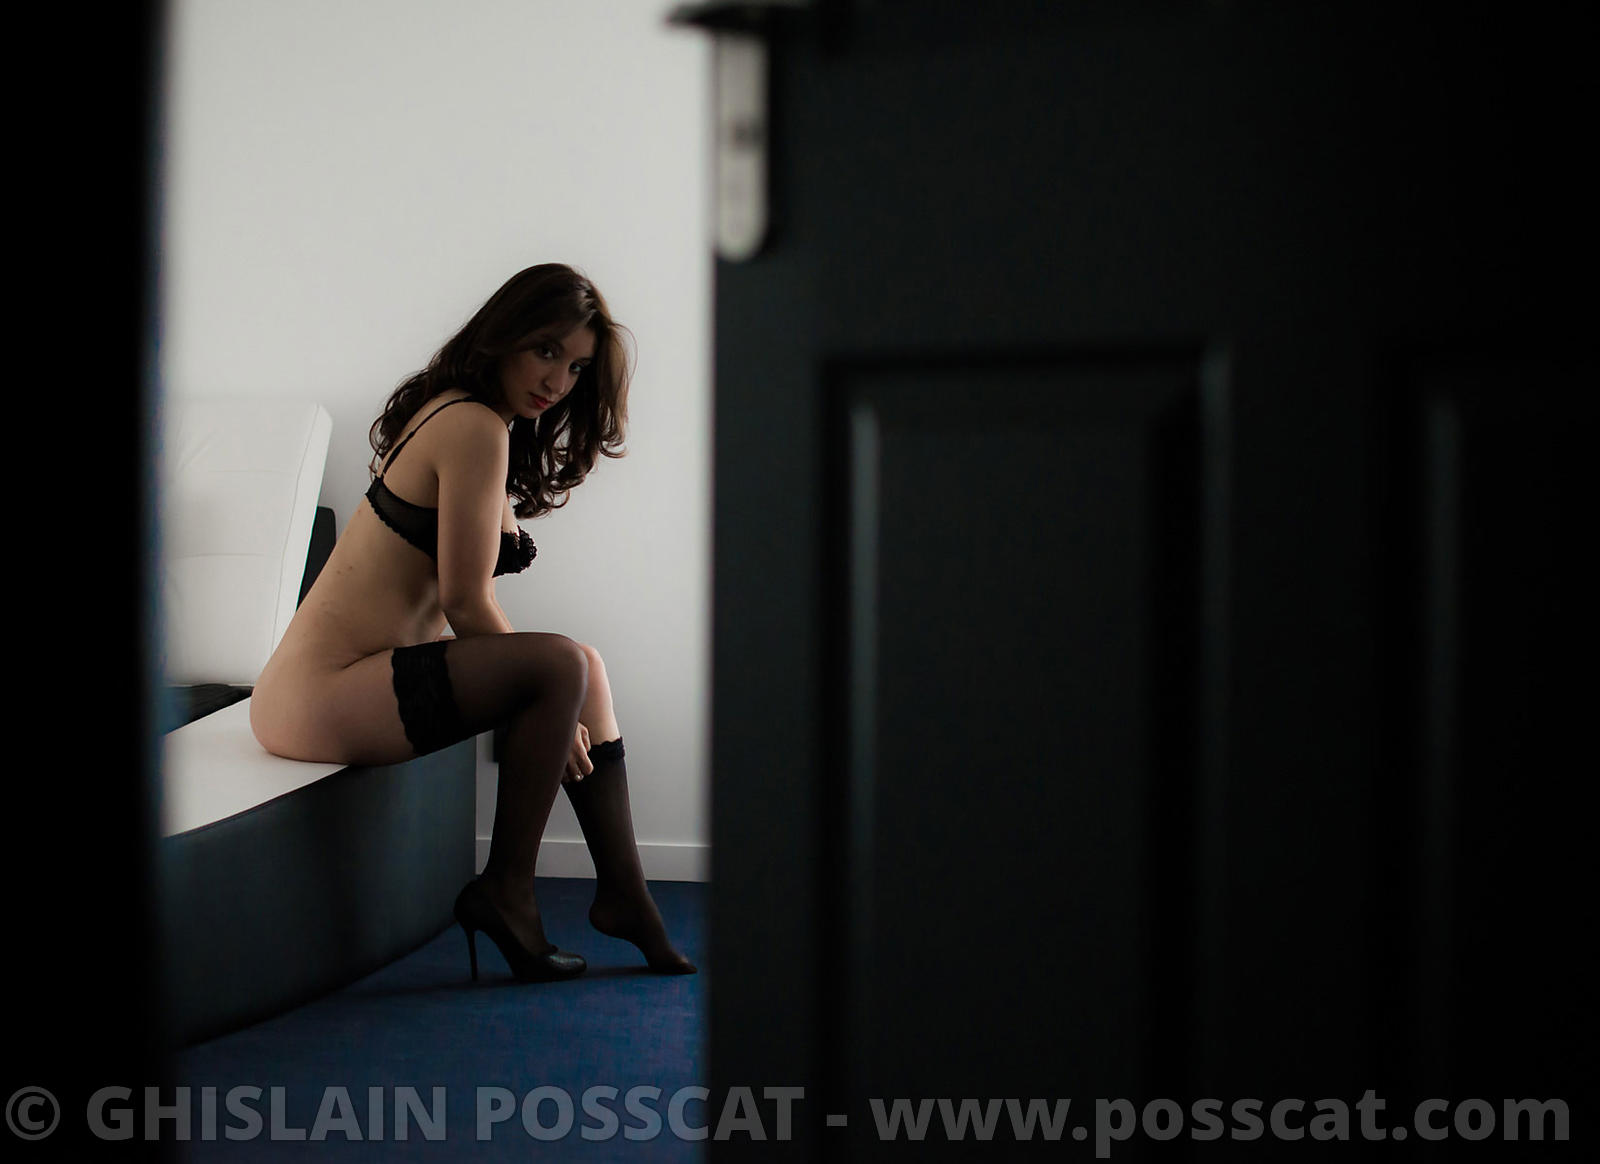 Photographe de charme Paris- Shooting photo charme en lingerie paris